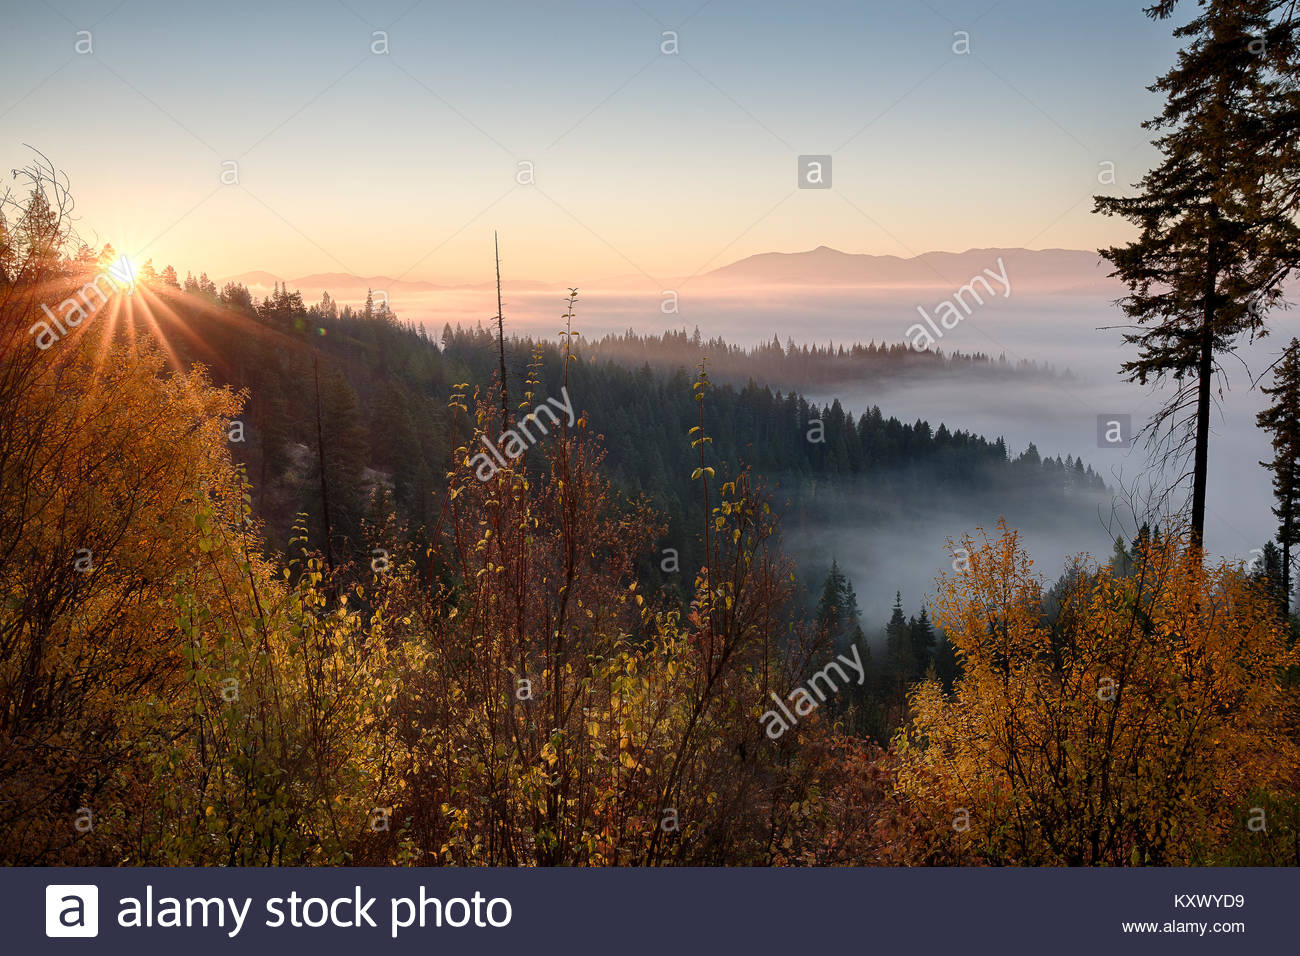 Idaho, North, Kootenai County, Coeur d'Alene. Sunrise over the fog filled valleys of the Coeur d'Alene District - Stock Image